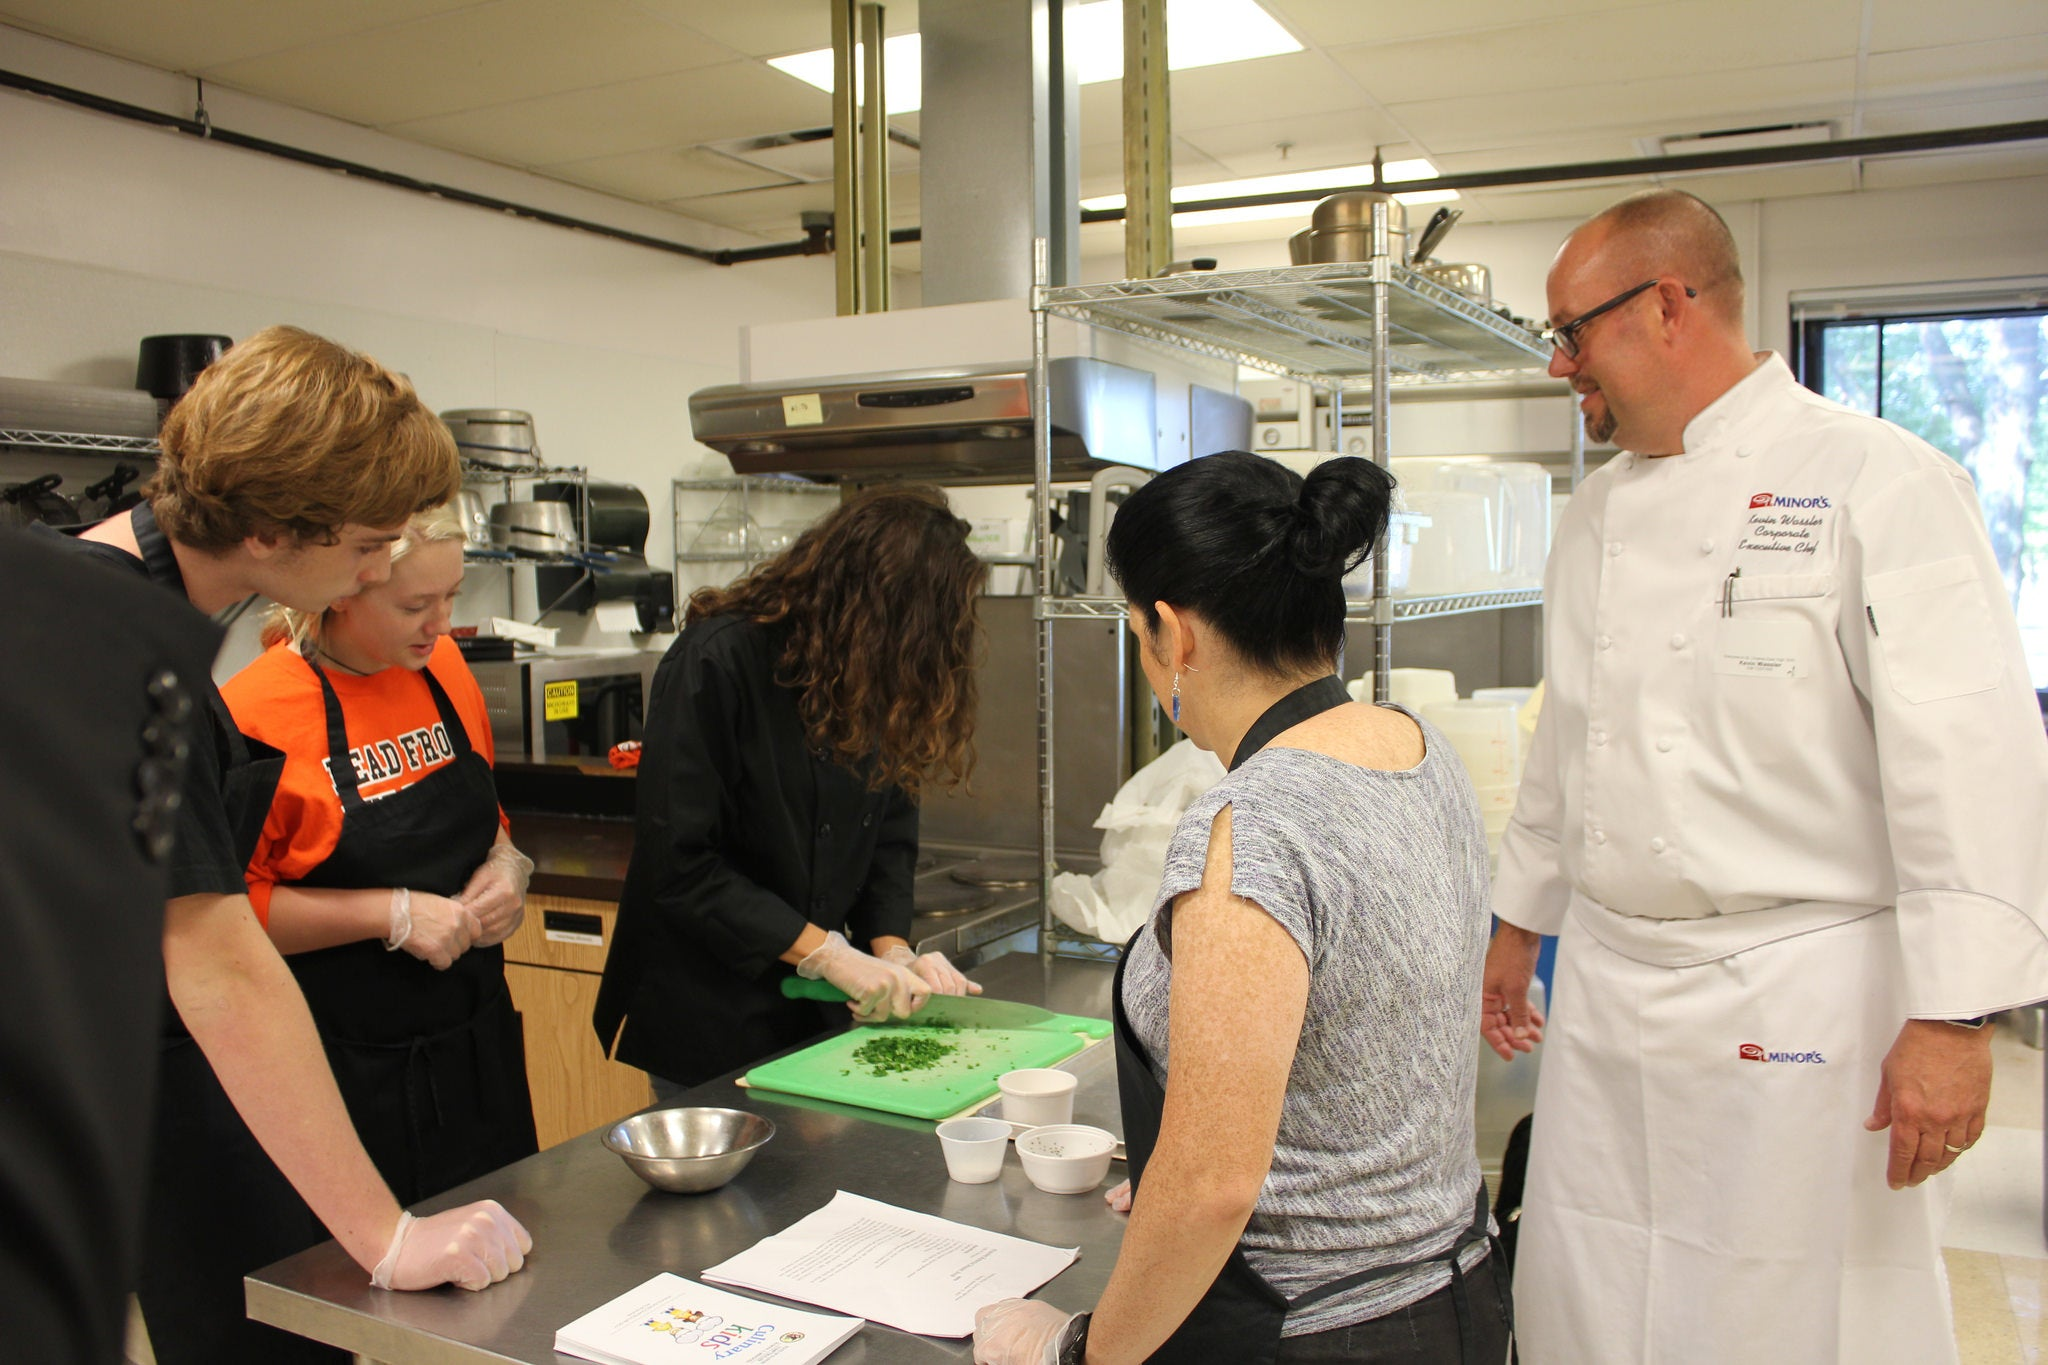 Young Chefs Culinary Camp June 2019, at Clarke in St Charles